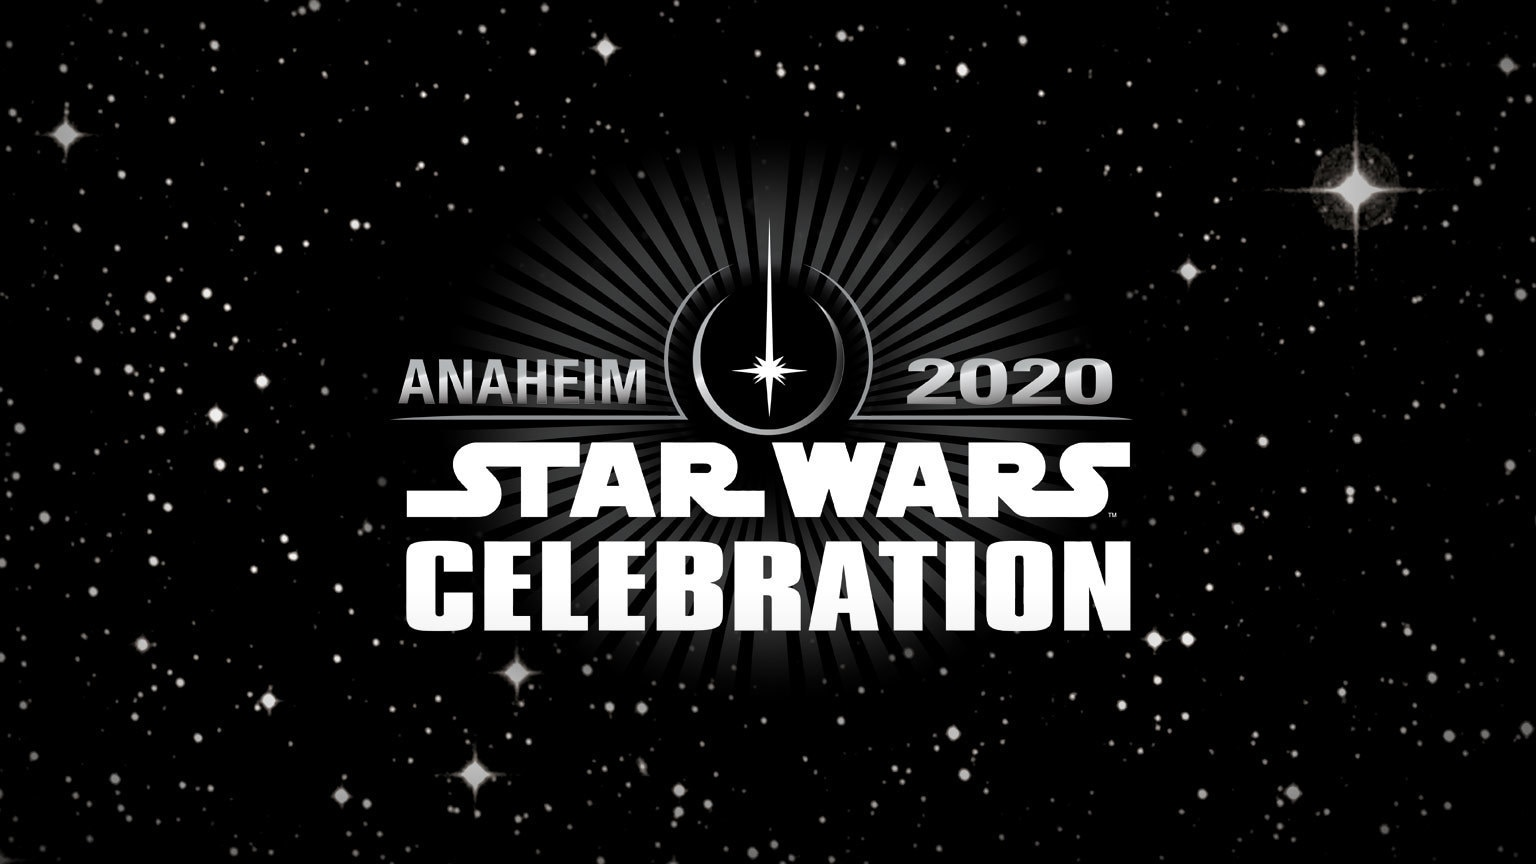 Star Wars Celebration | Official Website